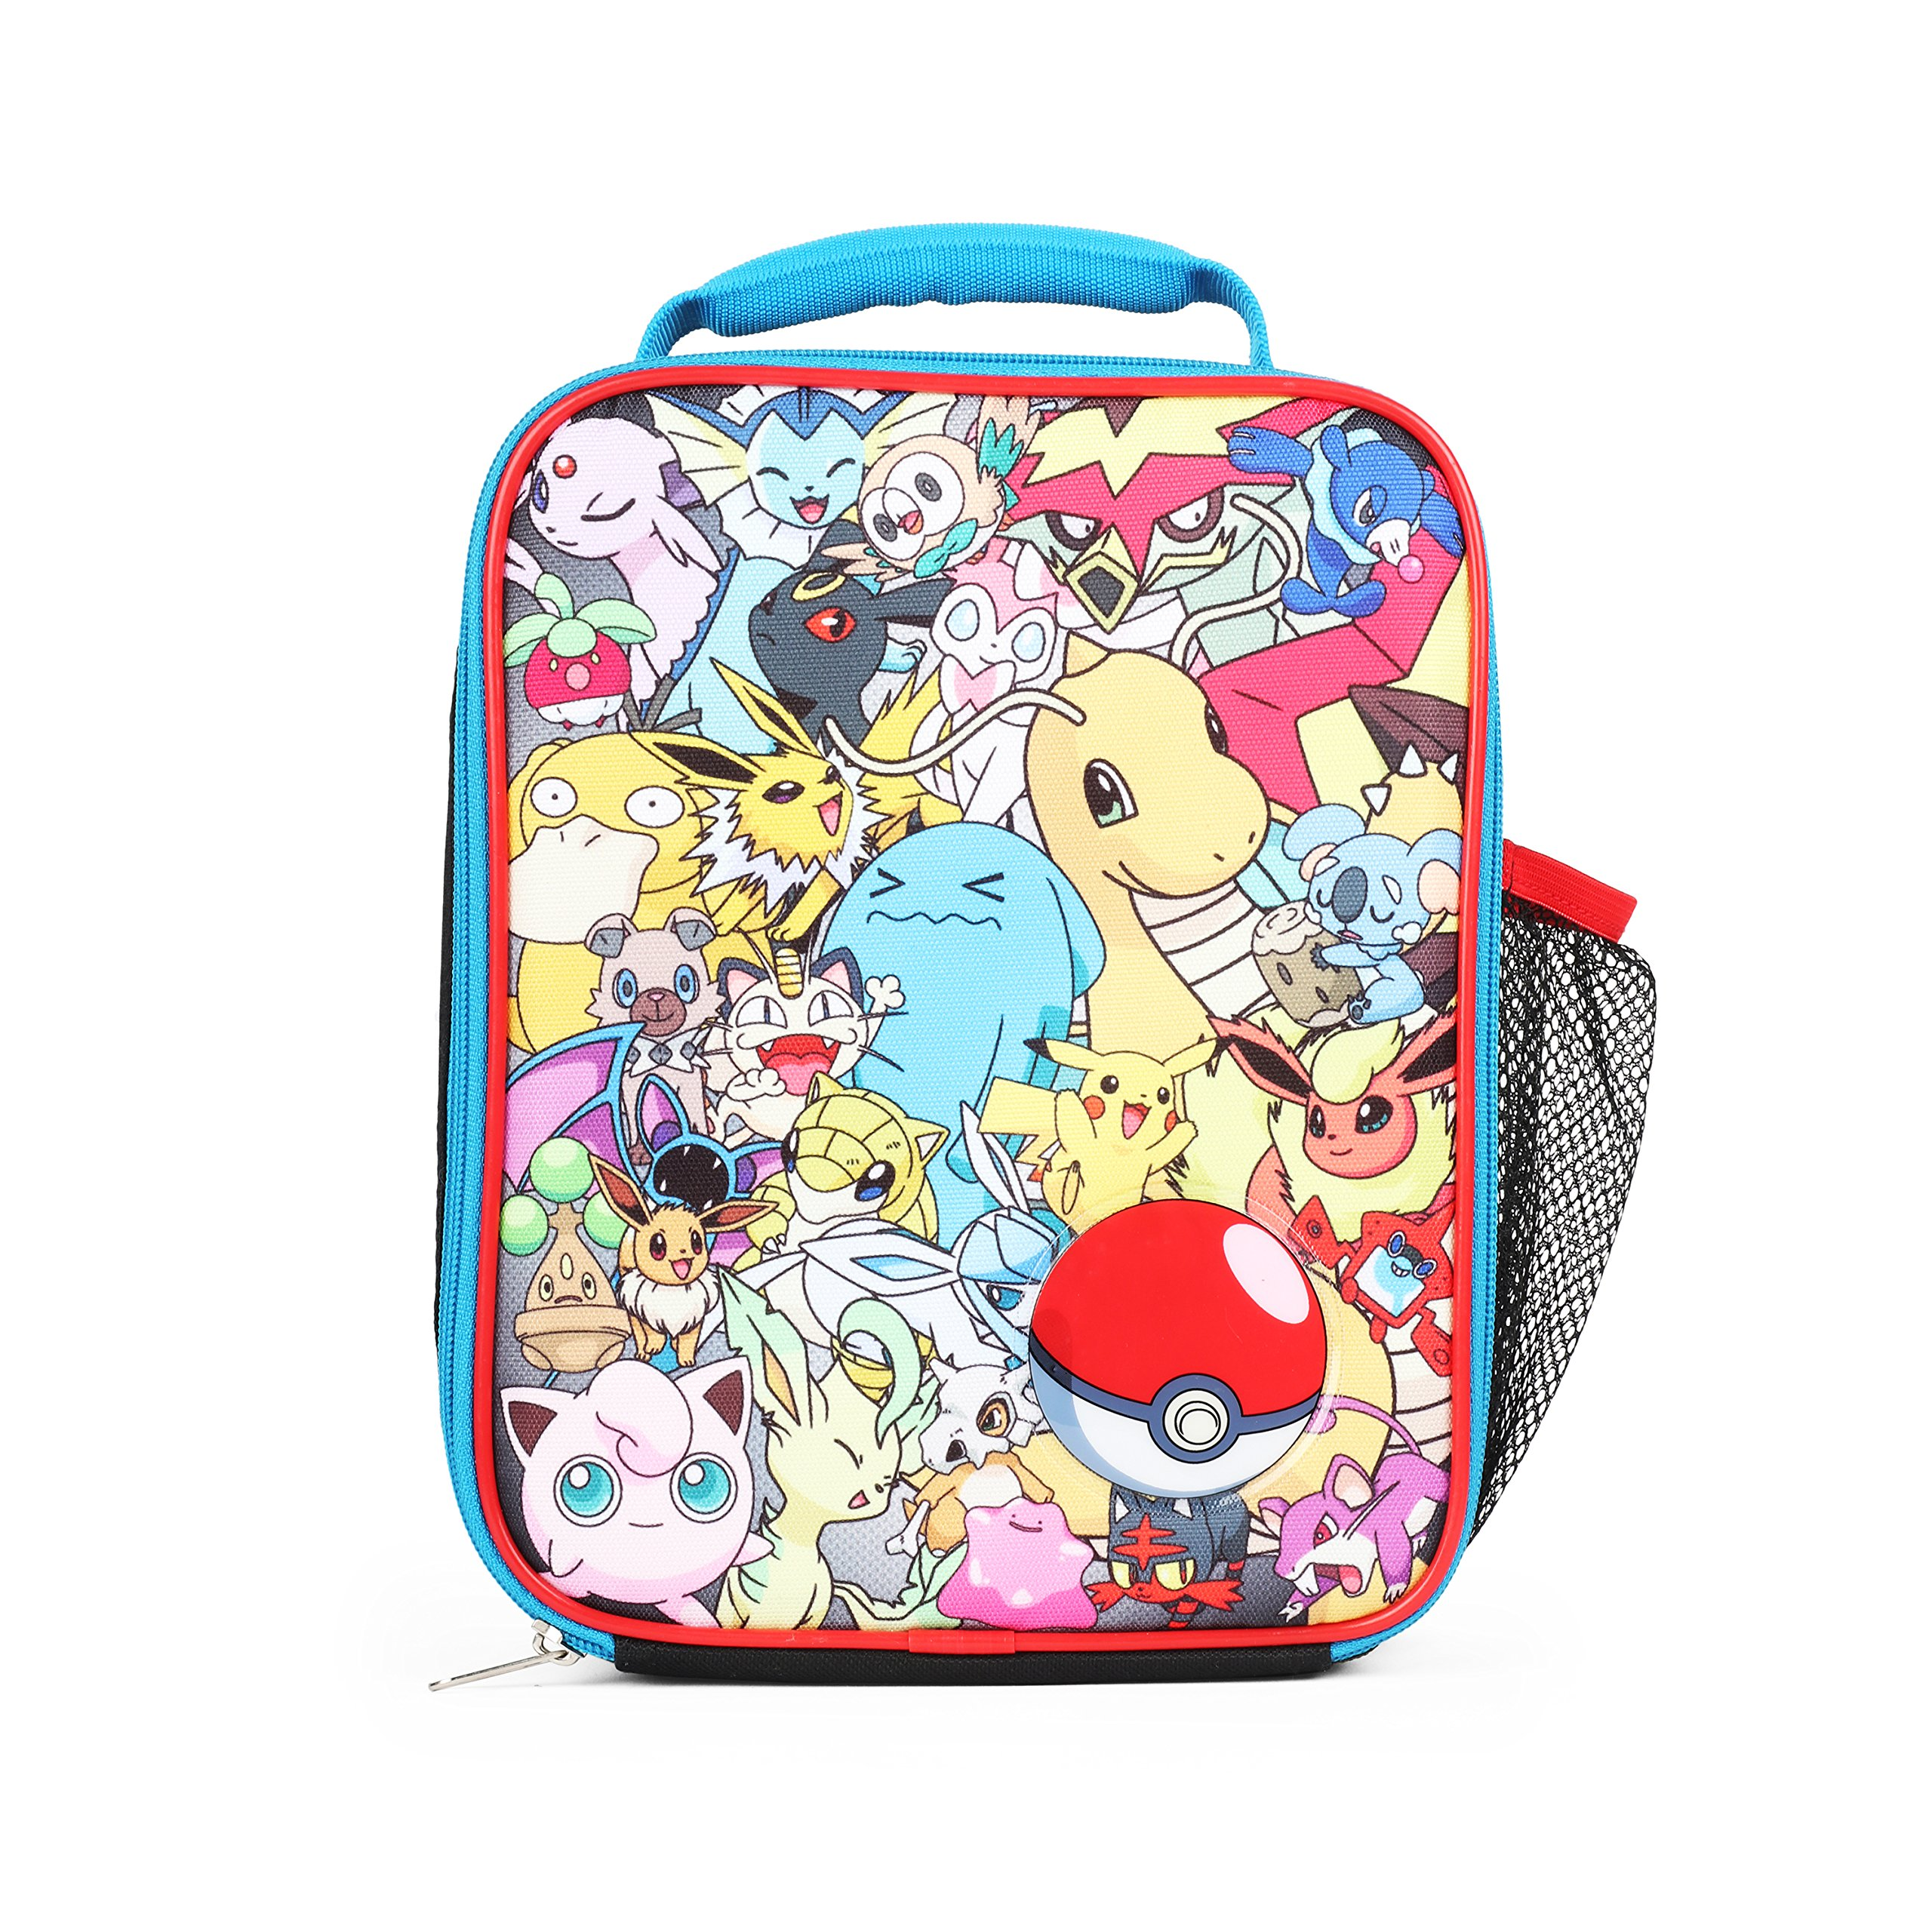 Pokemon All Over Print Multi Characters Insulated Lunch Bag for Kids with Mesh Pocket by Pokemon (Image #1)